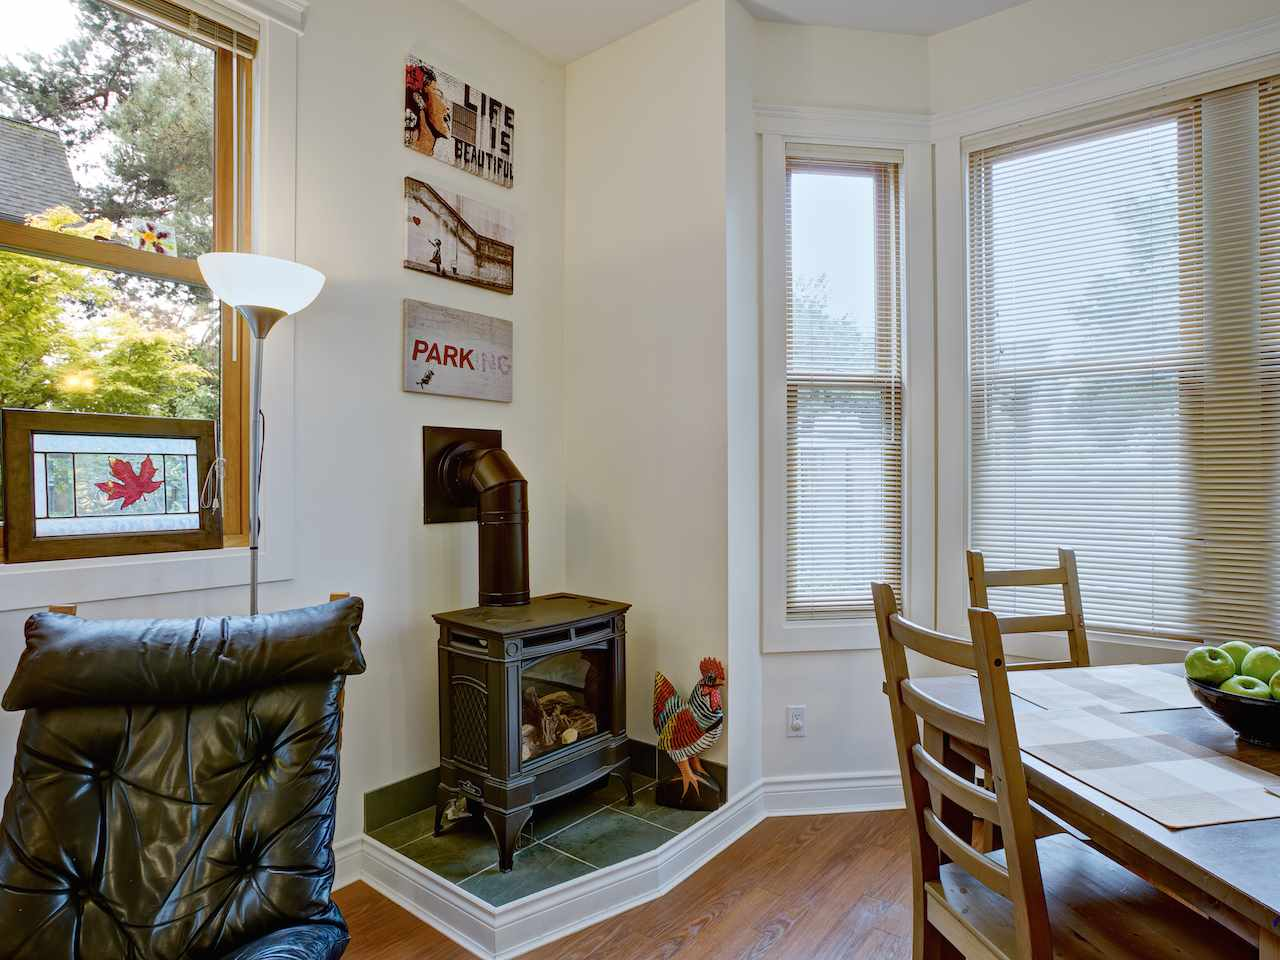 Photo 5: 840 DUNLEVY Avenue in Vancouver: Mount Pleasant VE House for sale (Vancouver East)  : MLS® # R2000261